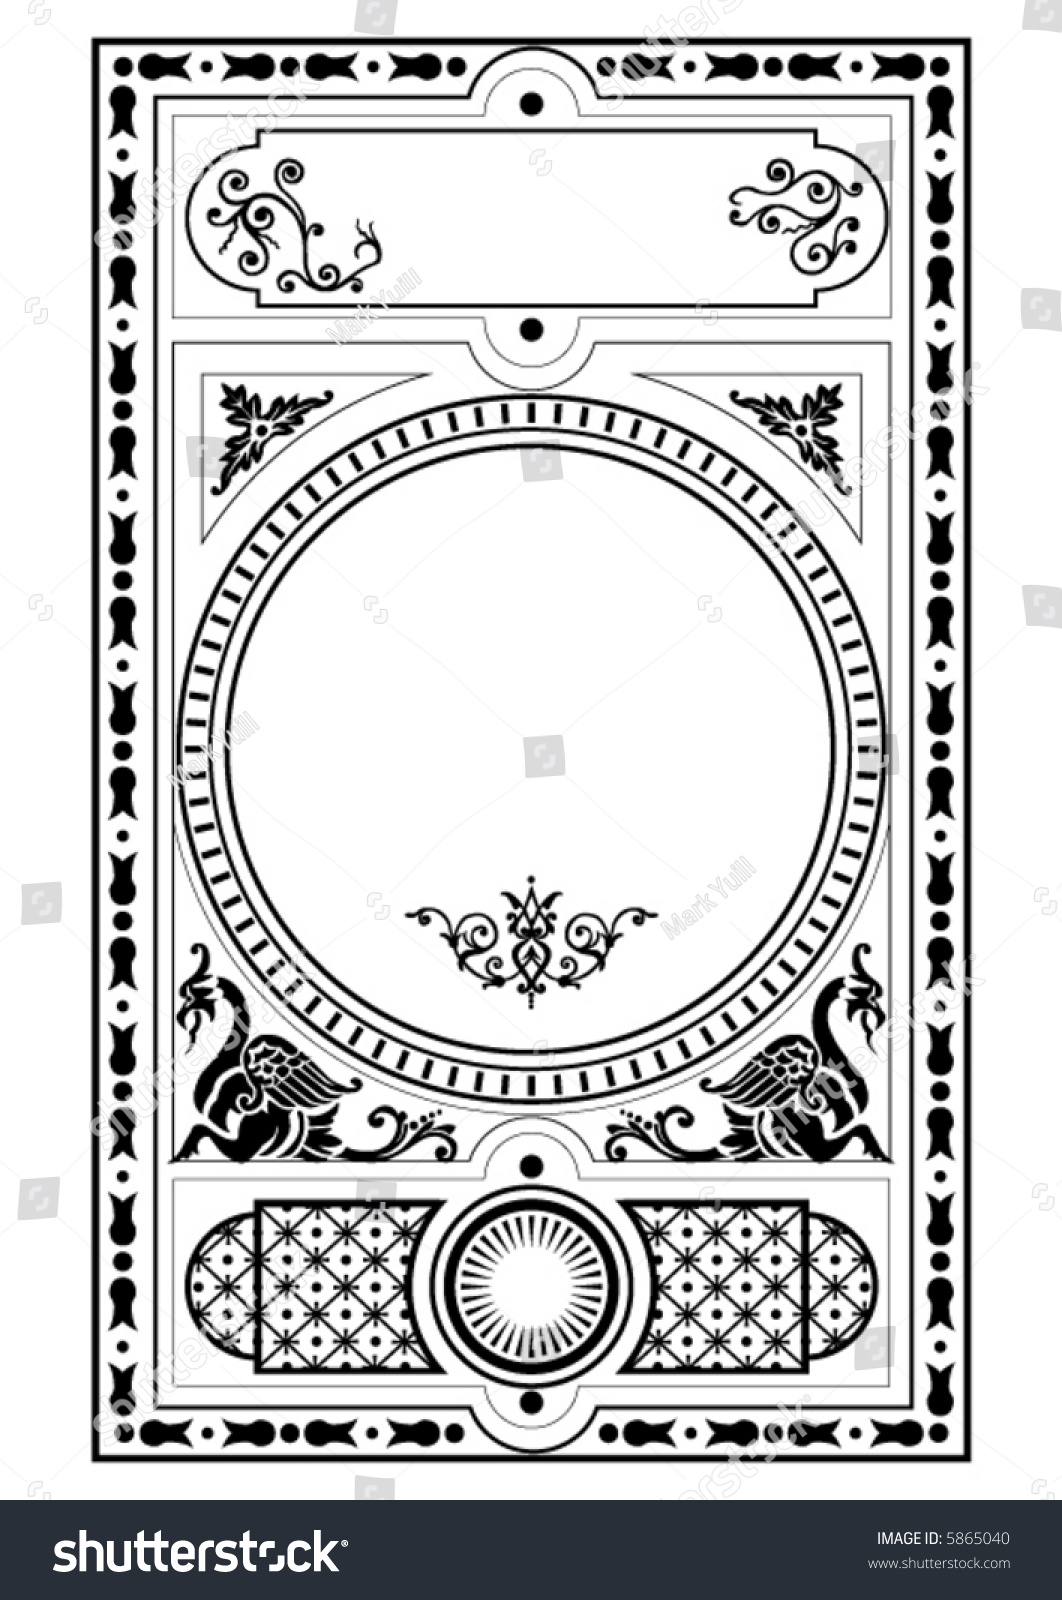 Victorian Design Elements victorian gothic decorative design elements stock vector 5865040